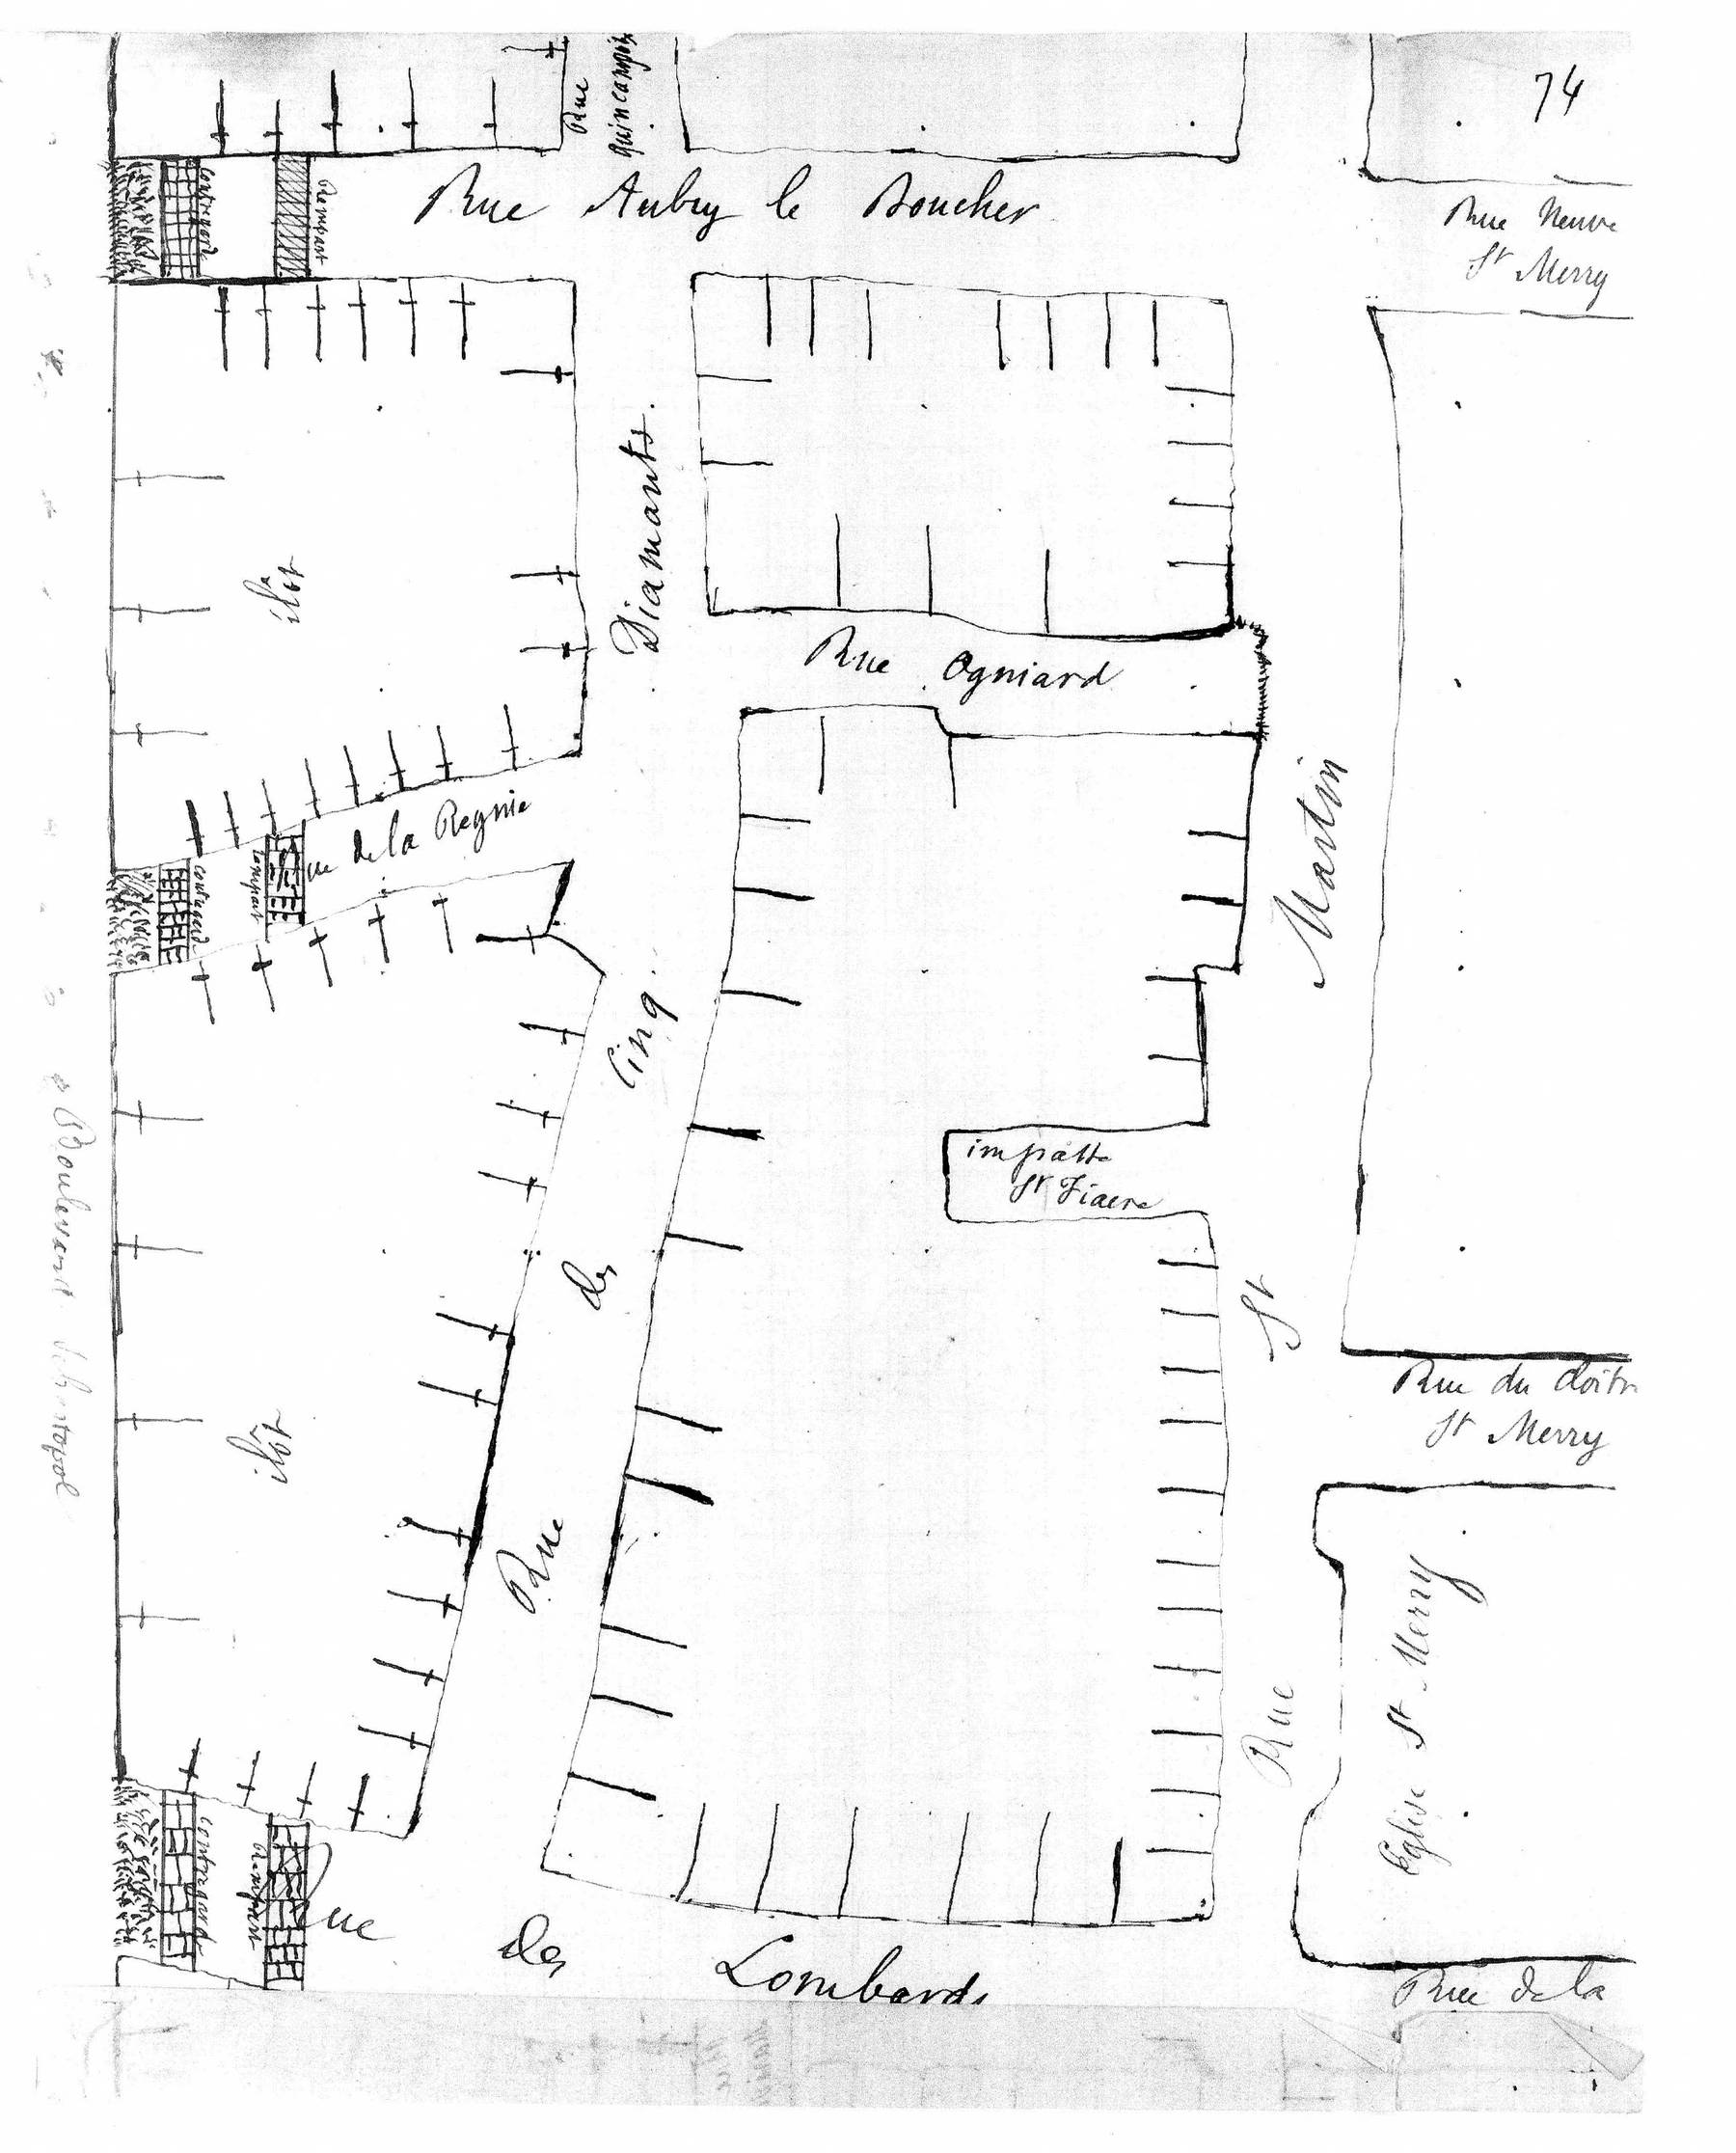 instructions-diagramme-plan-du-quartier-mss-95921-f-74